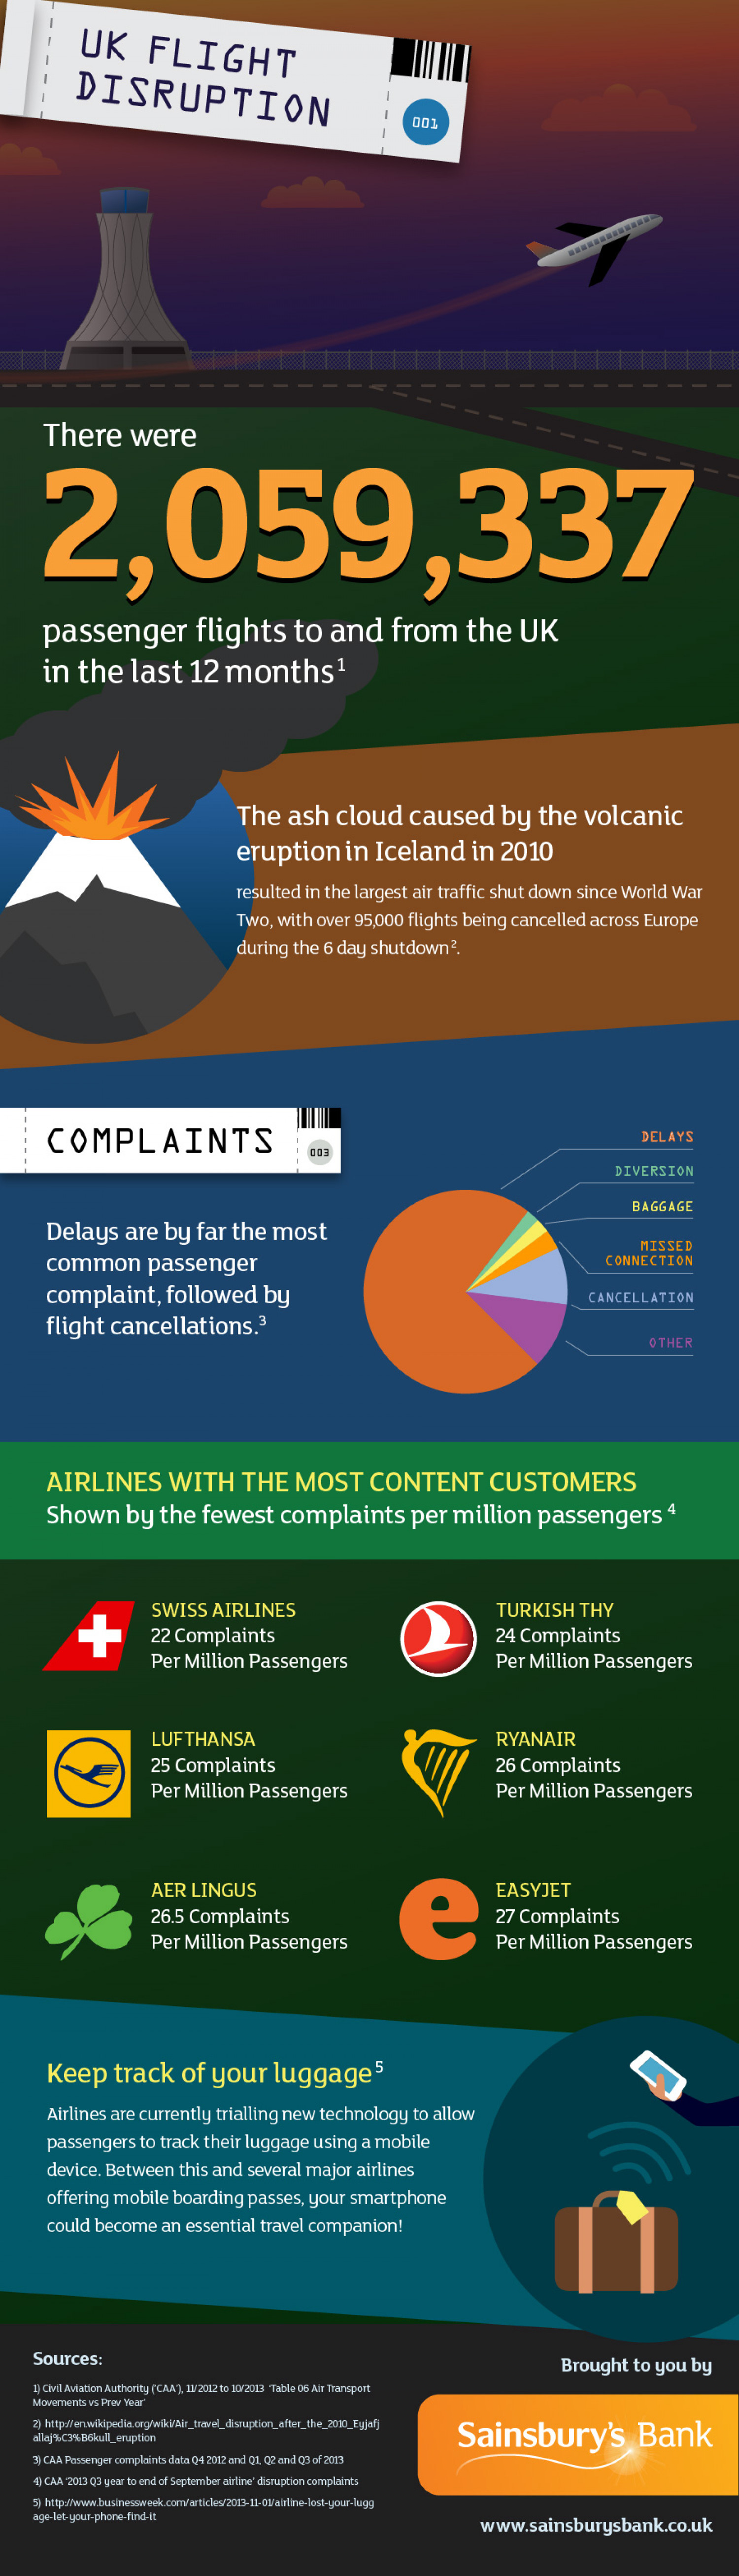 UK Flight Disruption Infographic